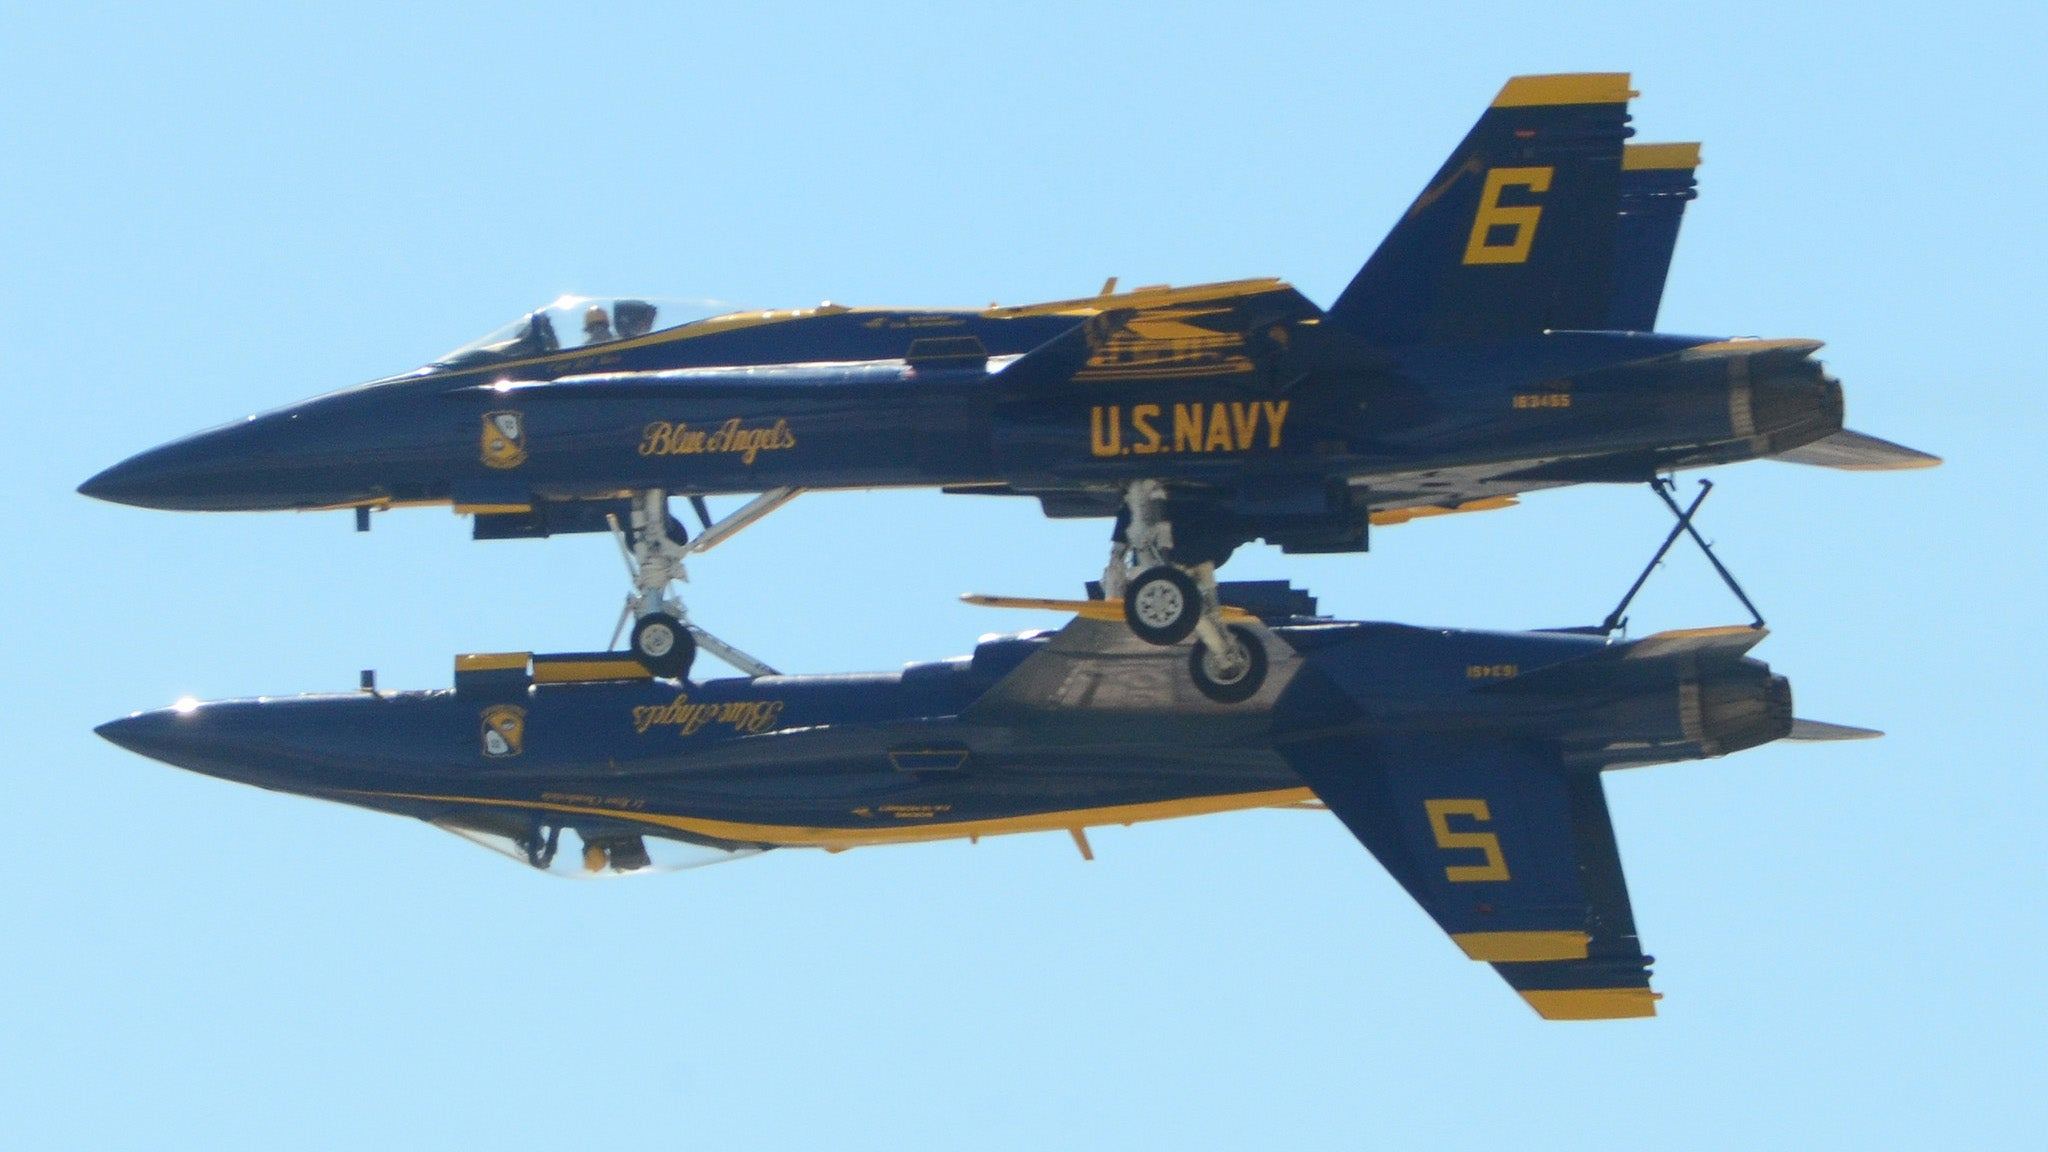 This Blue Angels Stunt Looks So Insanely Dangerous